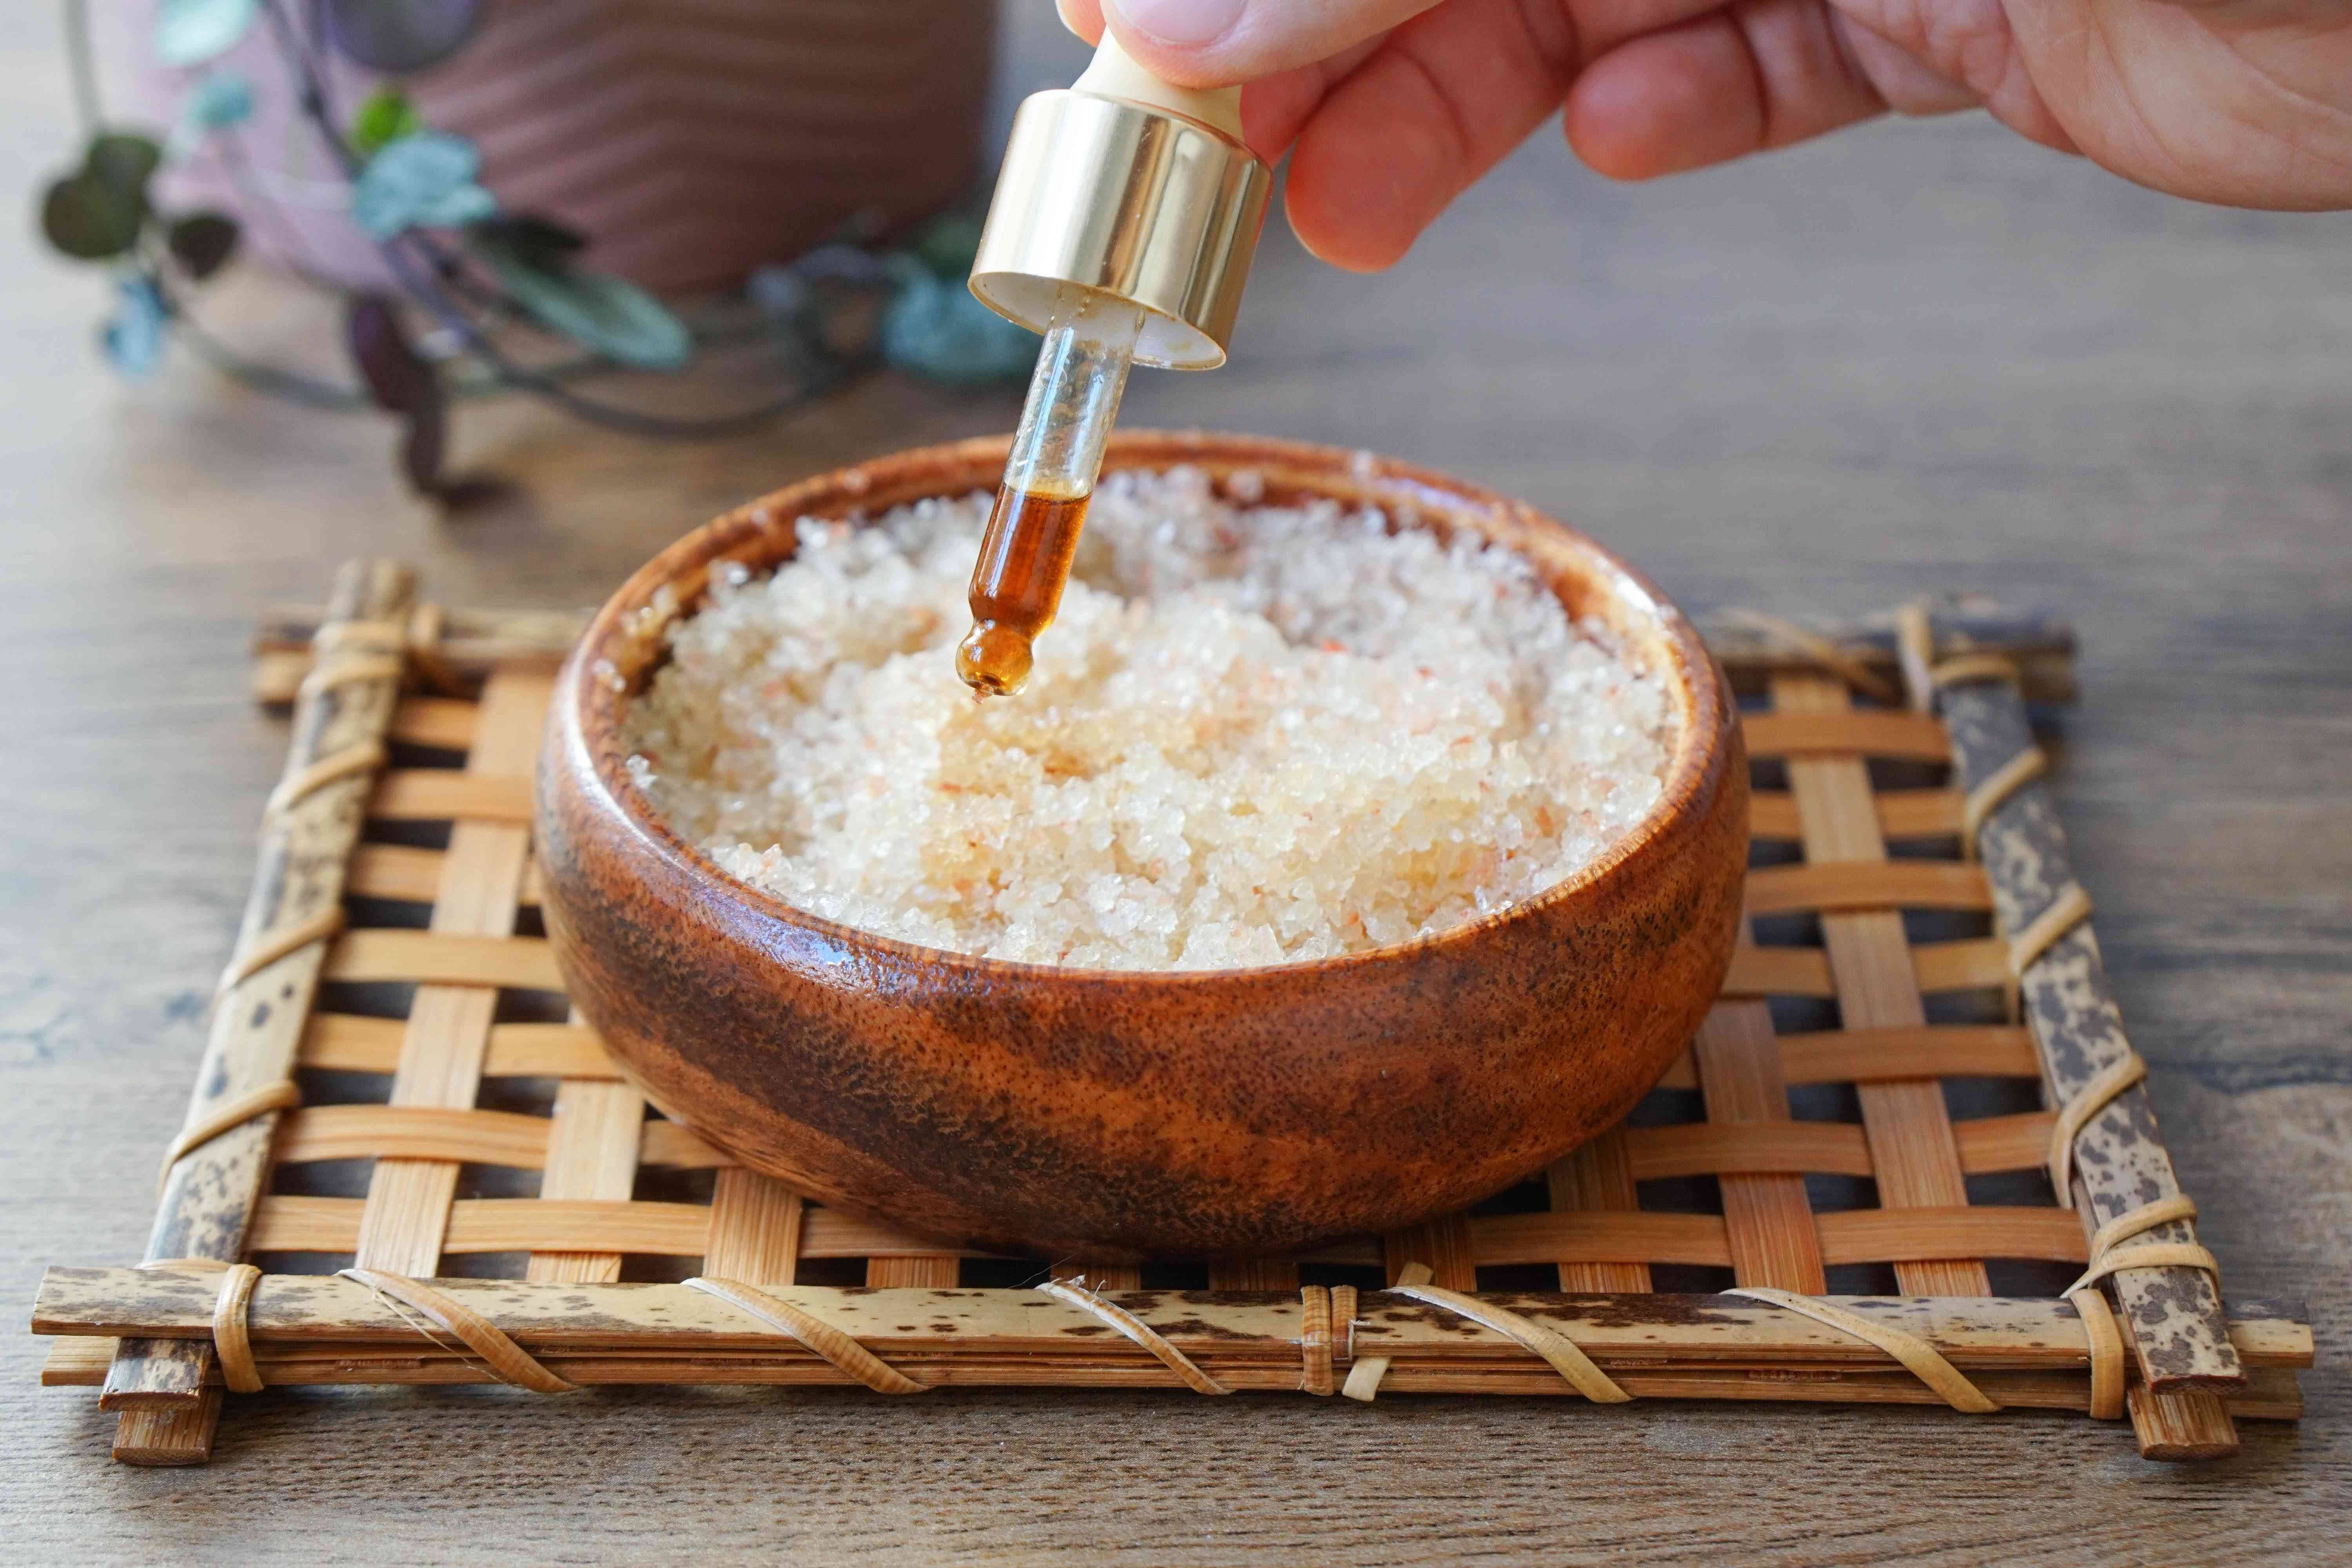 glass dropper of essential oil is added to salt scrub mixture in wooden bowl